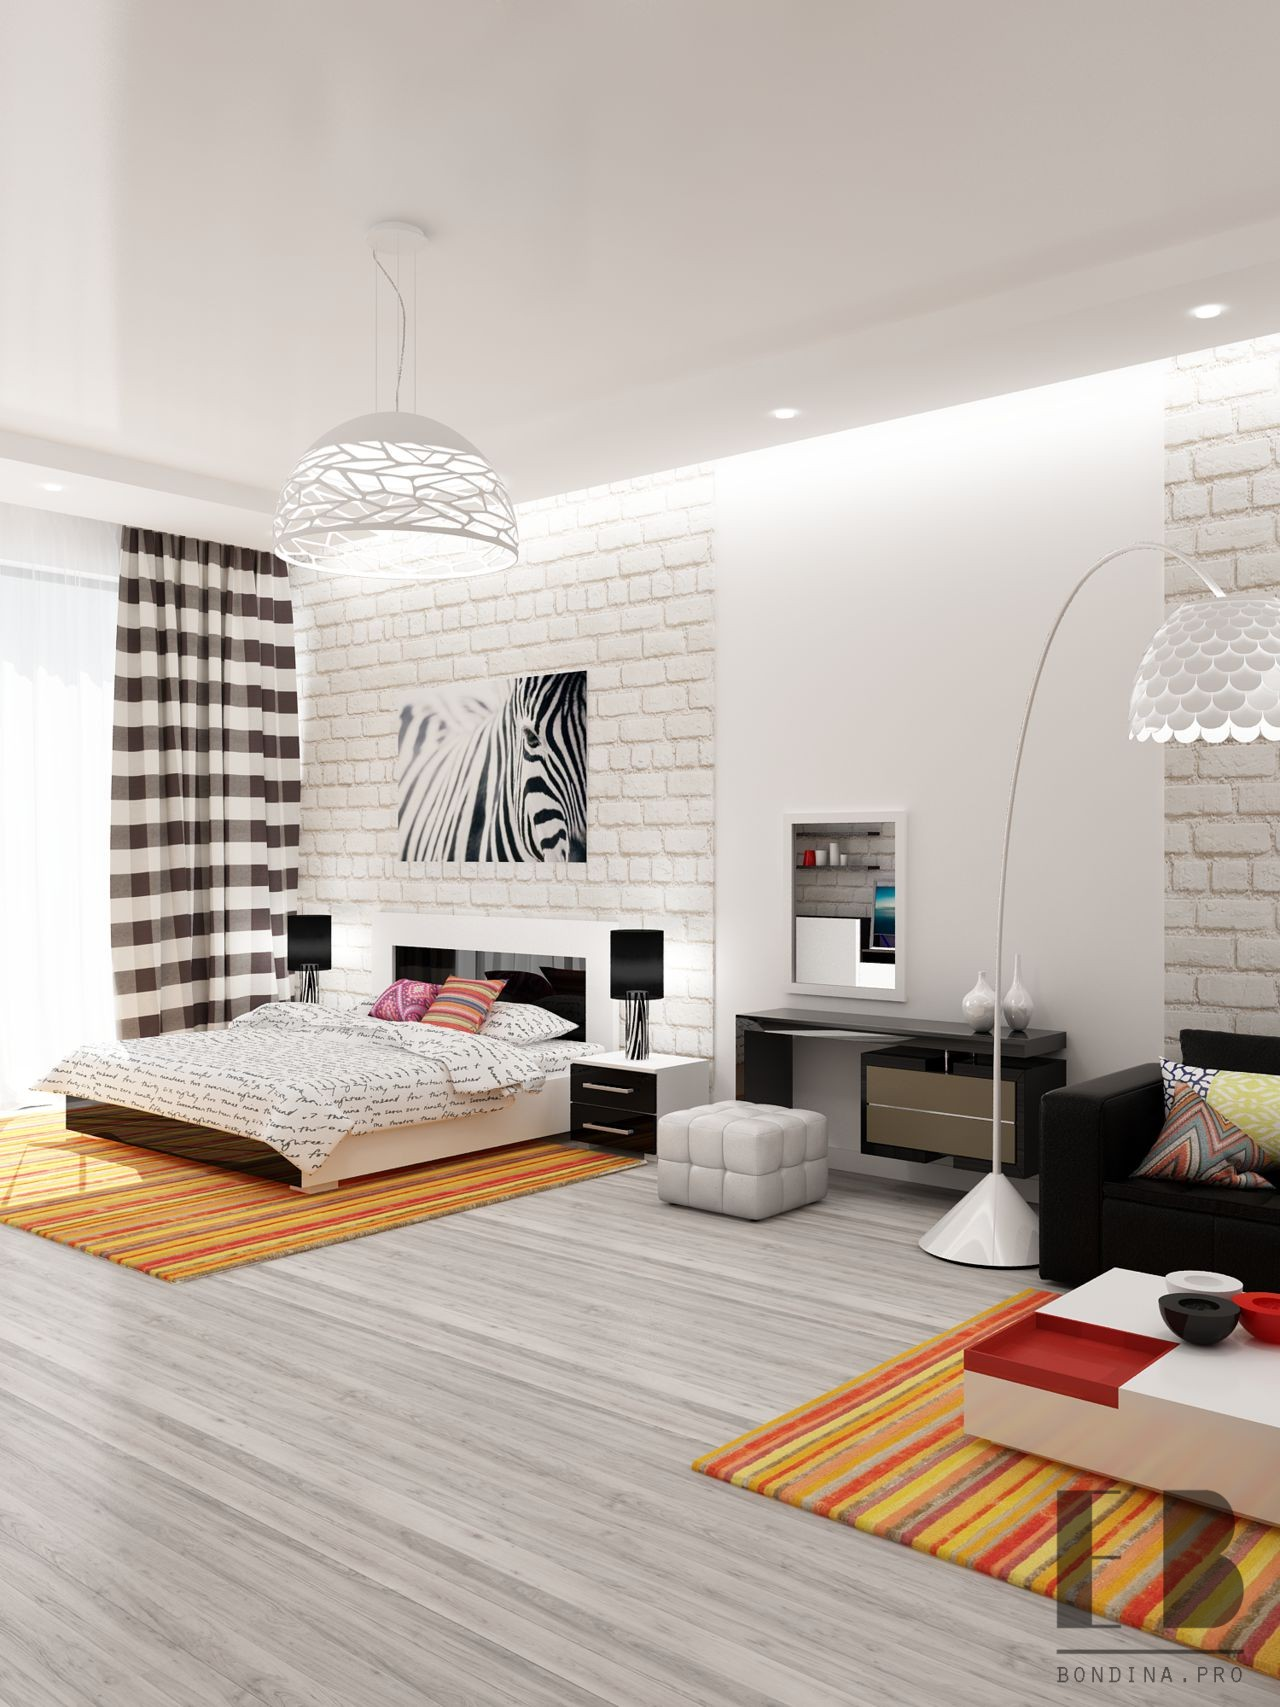 Living room and bedroom in one room design